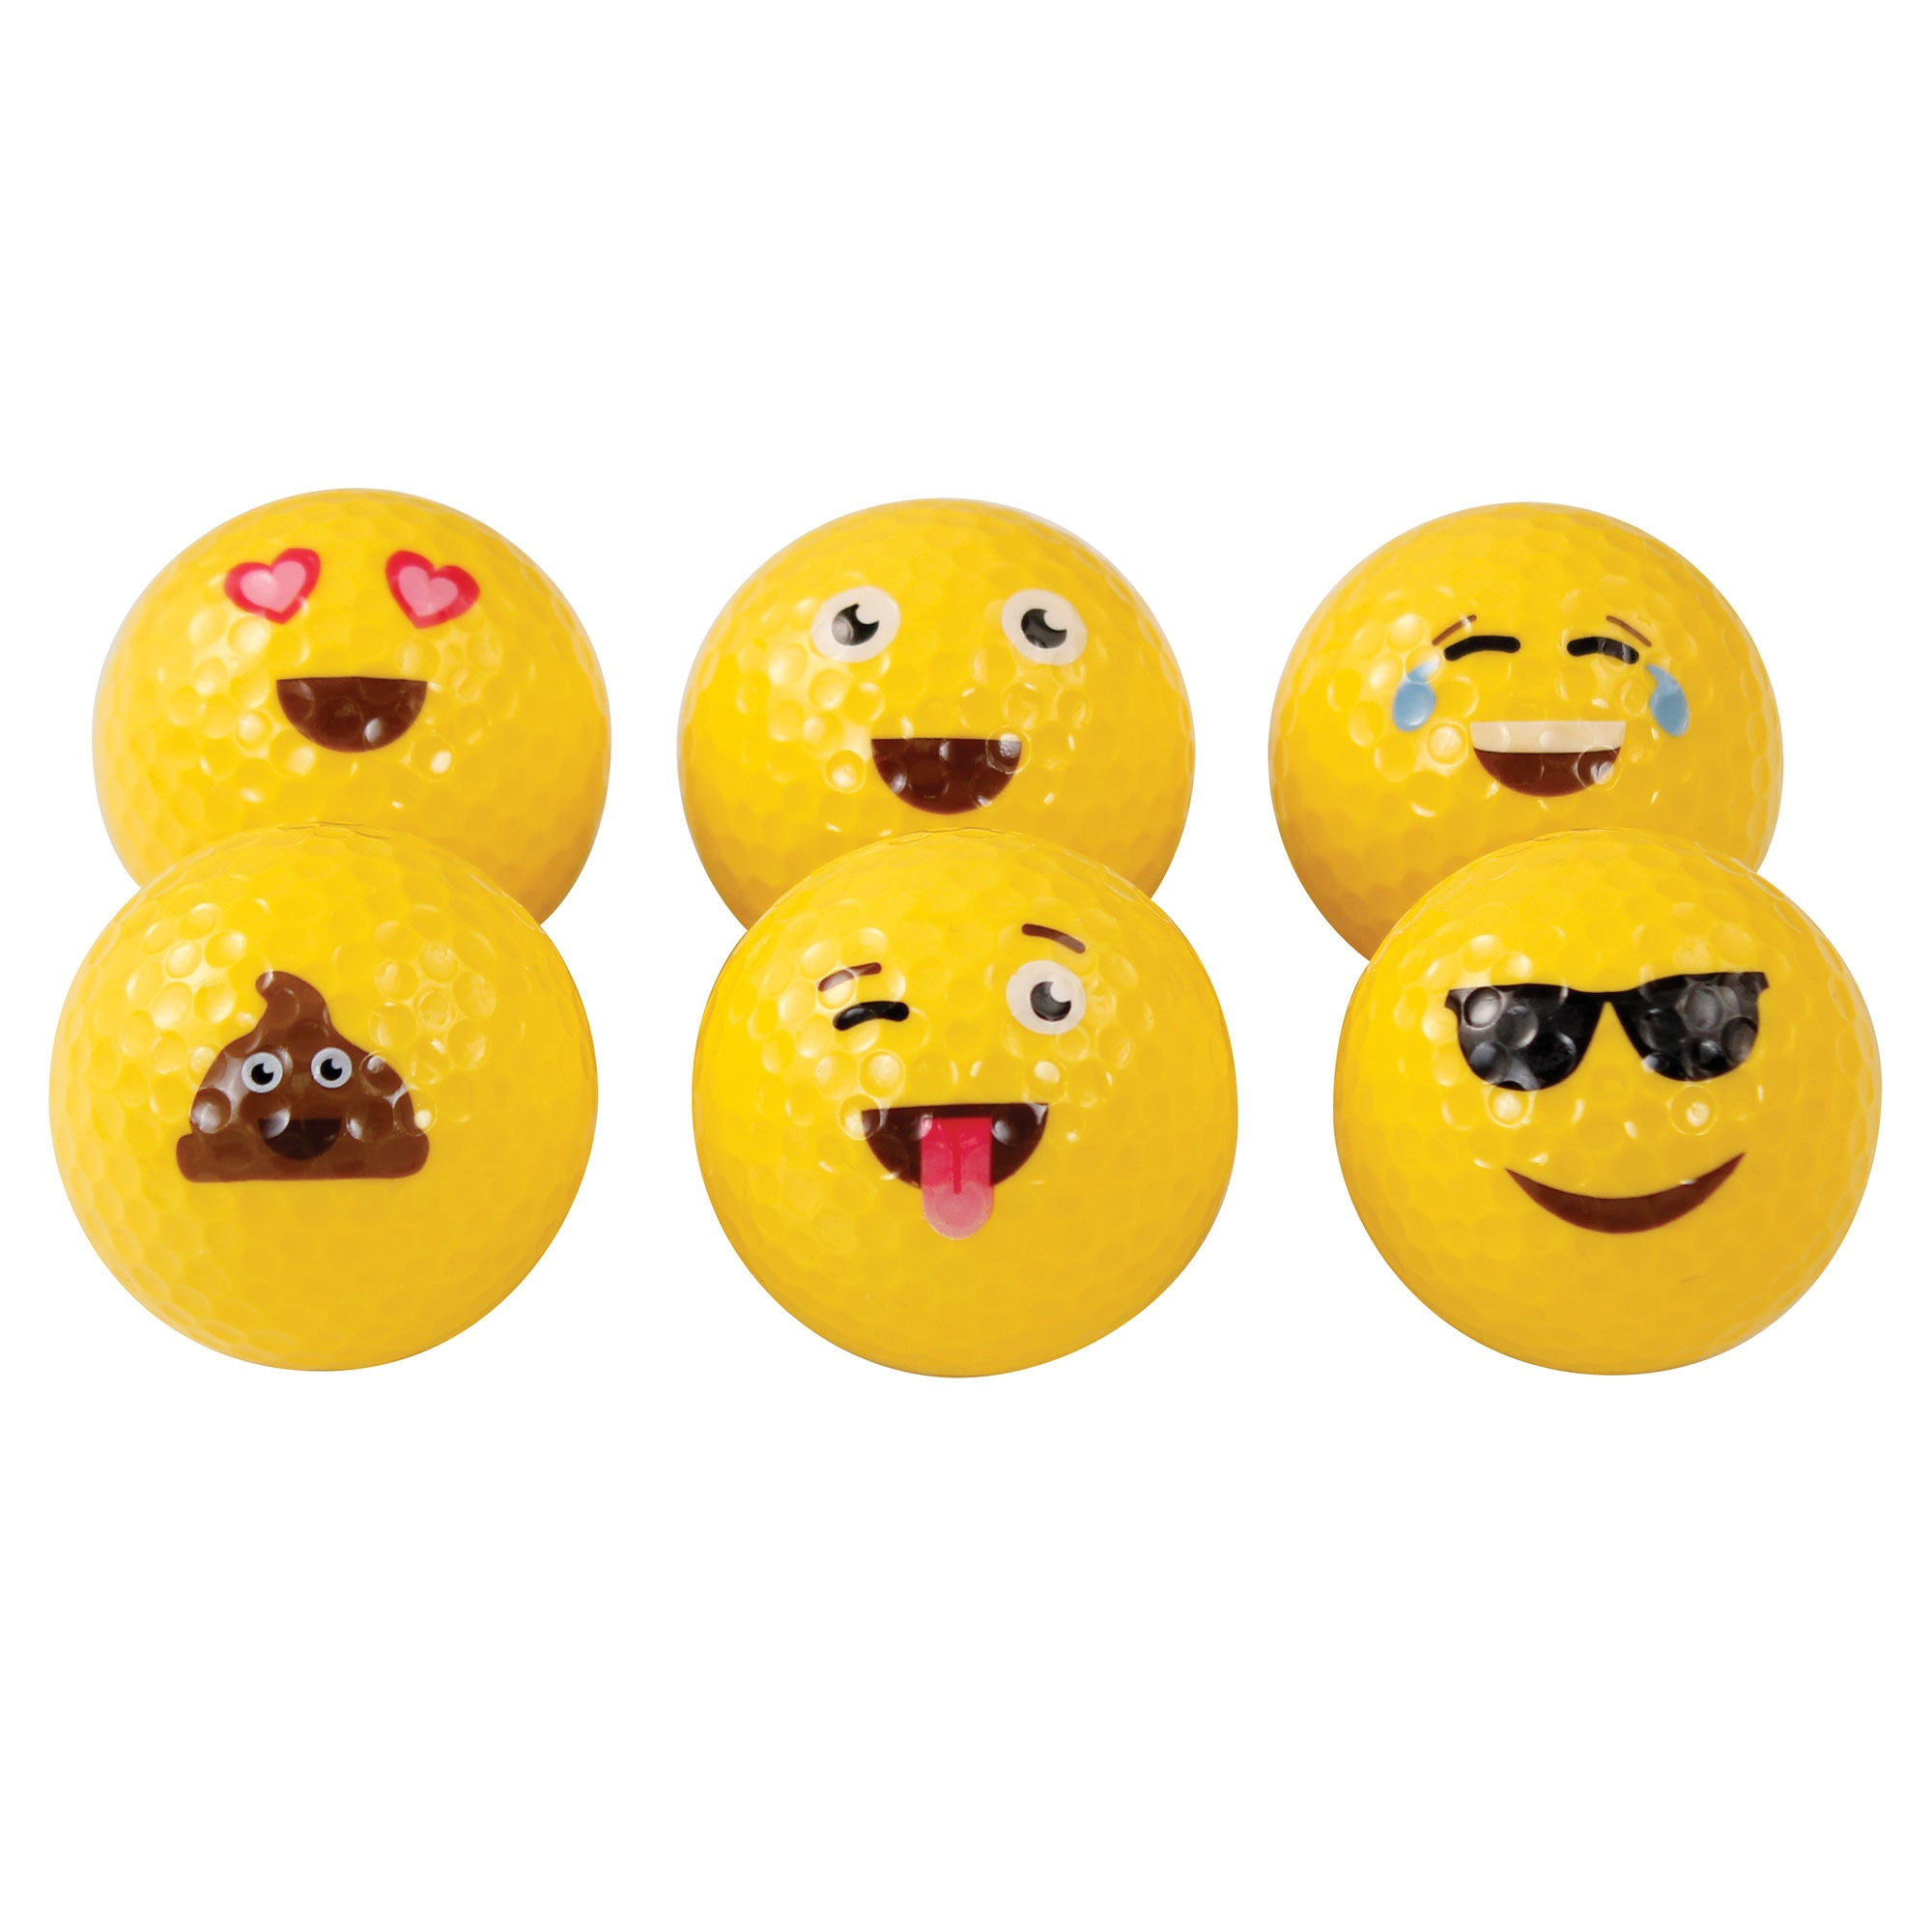 Emoji Golf Balls (Pack of 6 Assorted) - Putterfingers.com